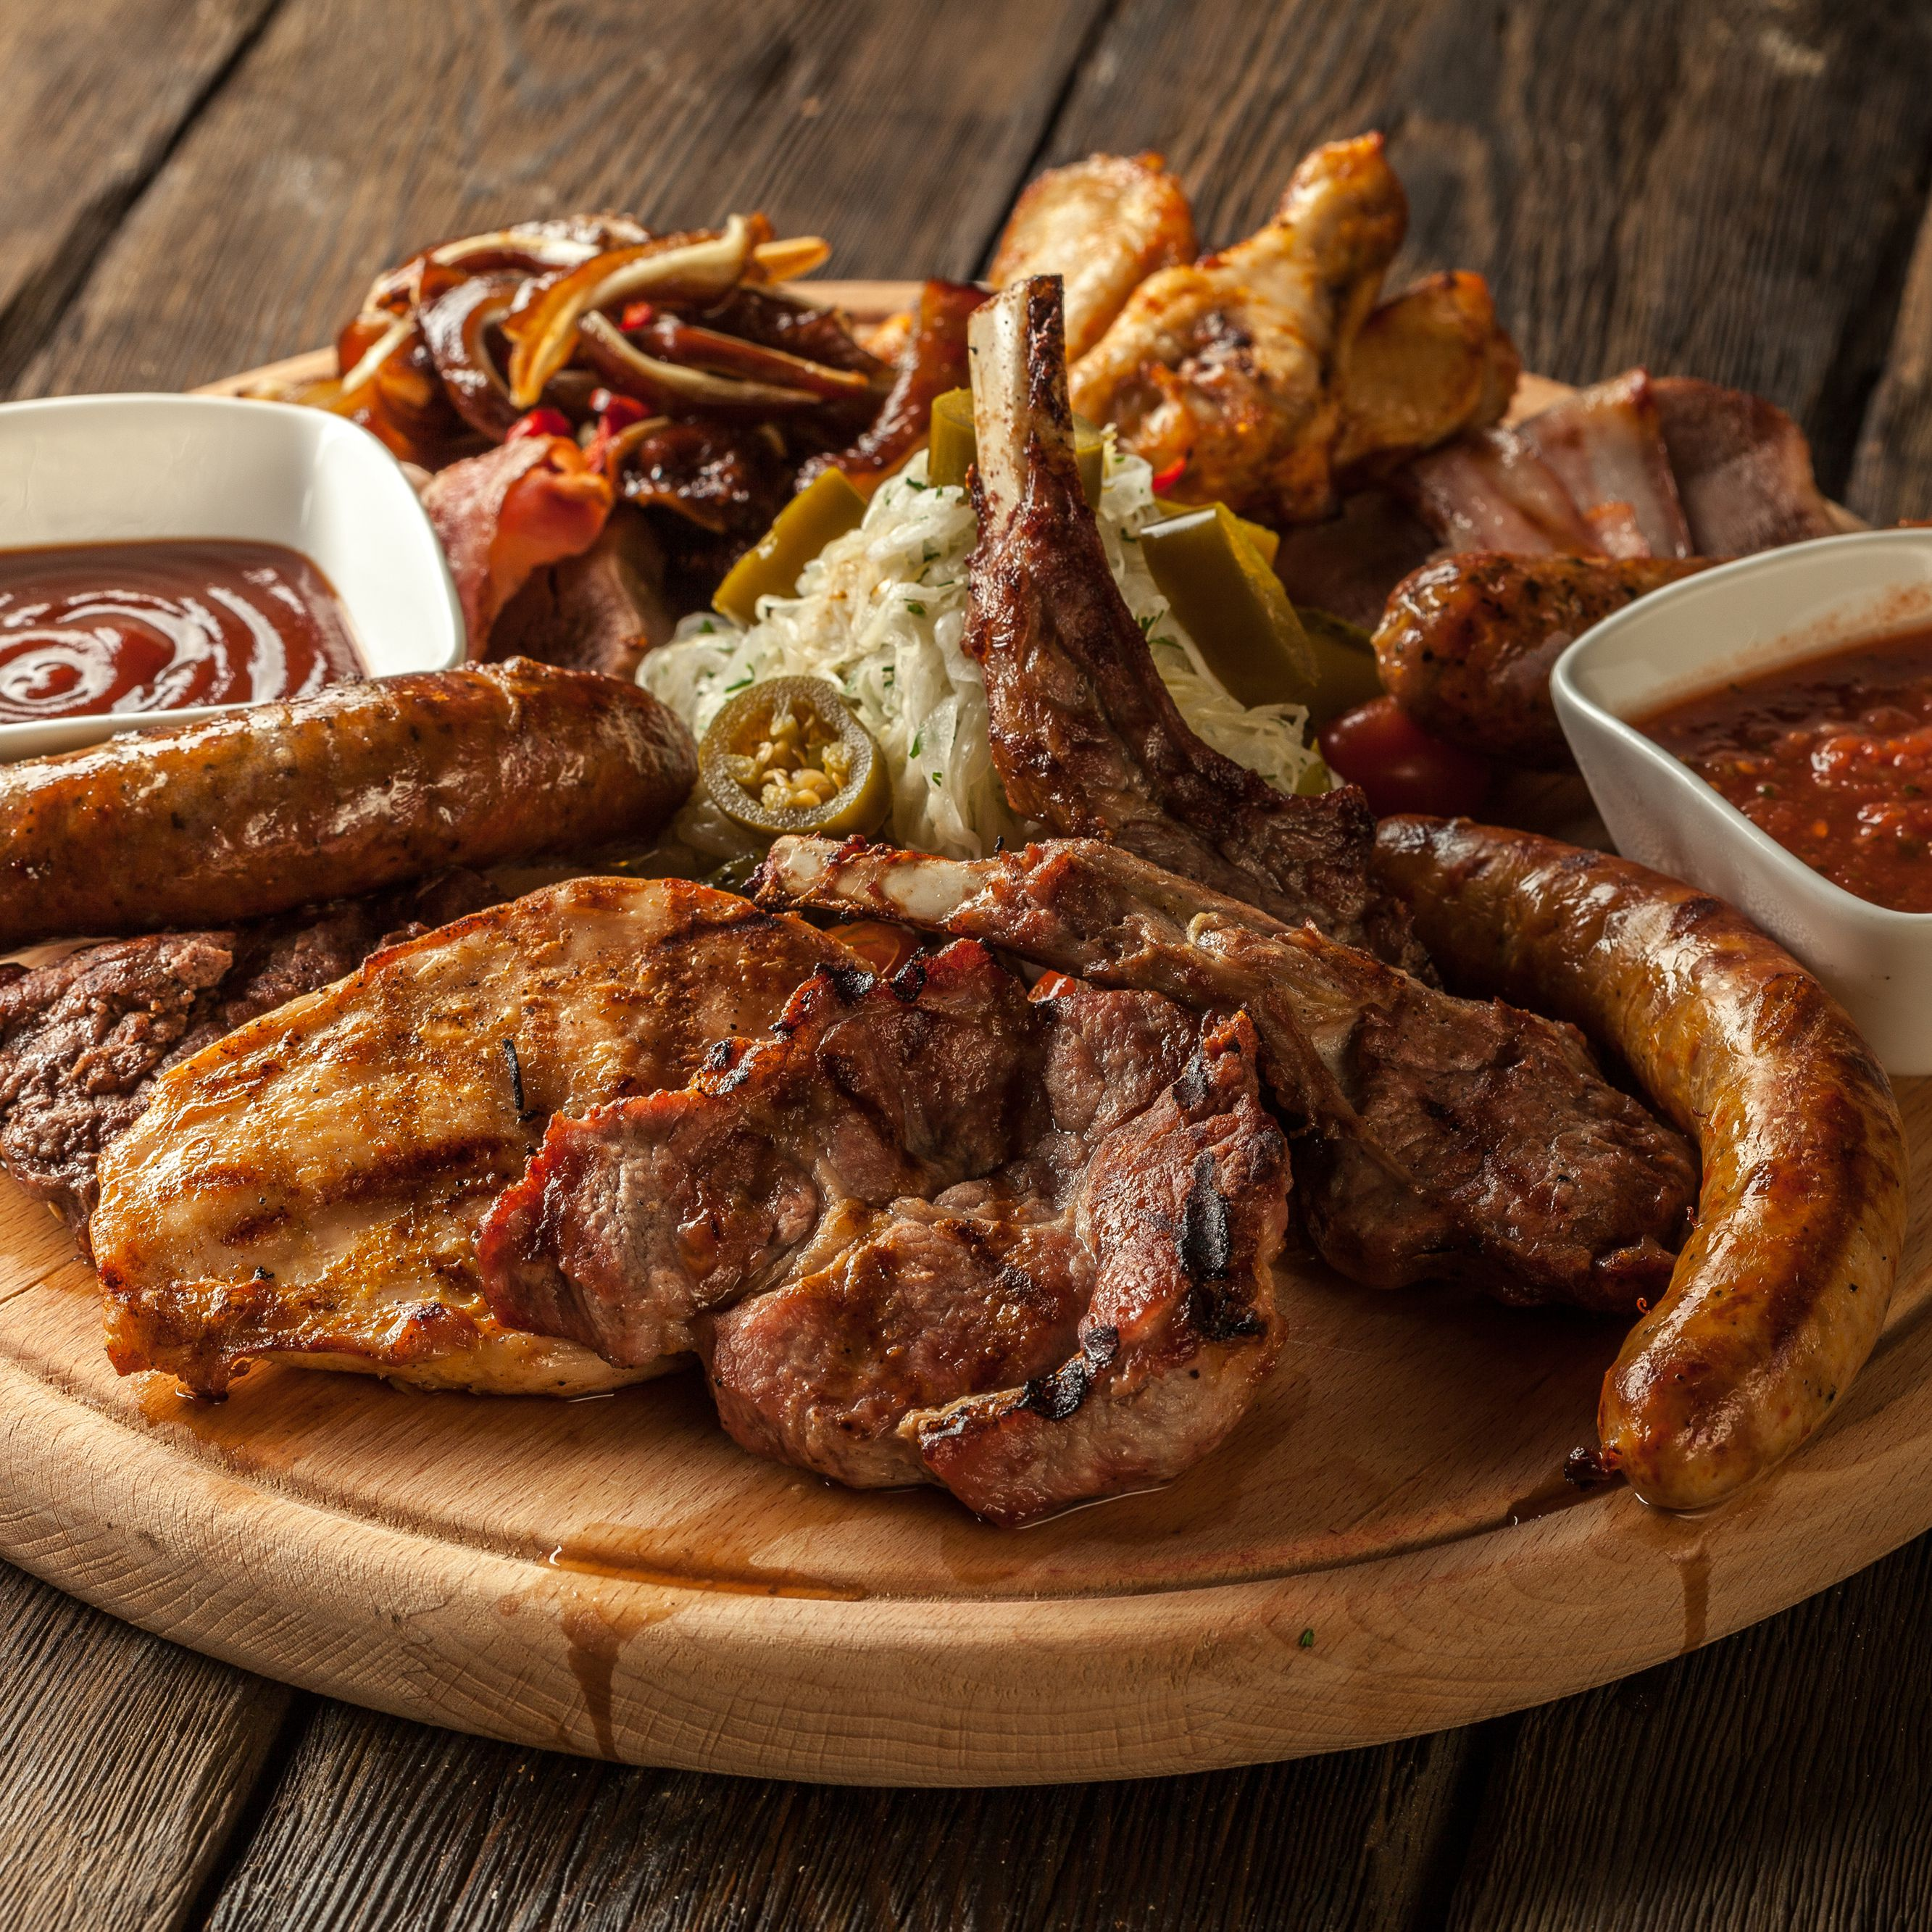 Barbecue Leftovers - How to Store, Reheat, and Recipes